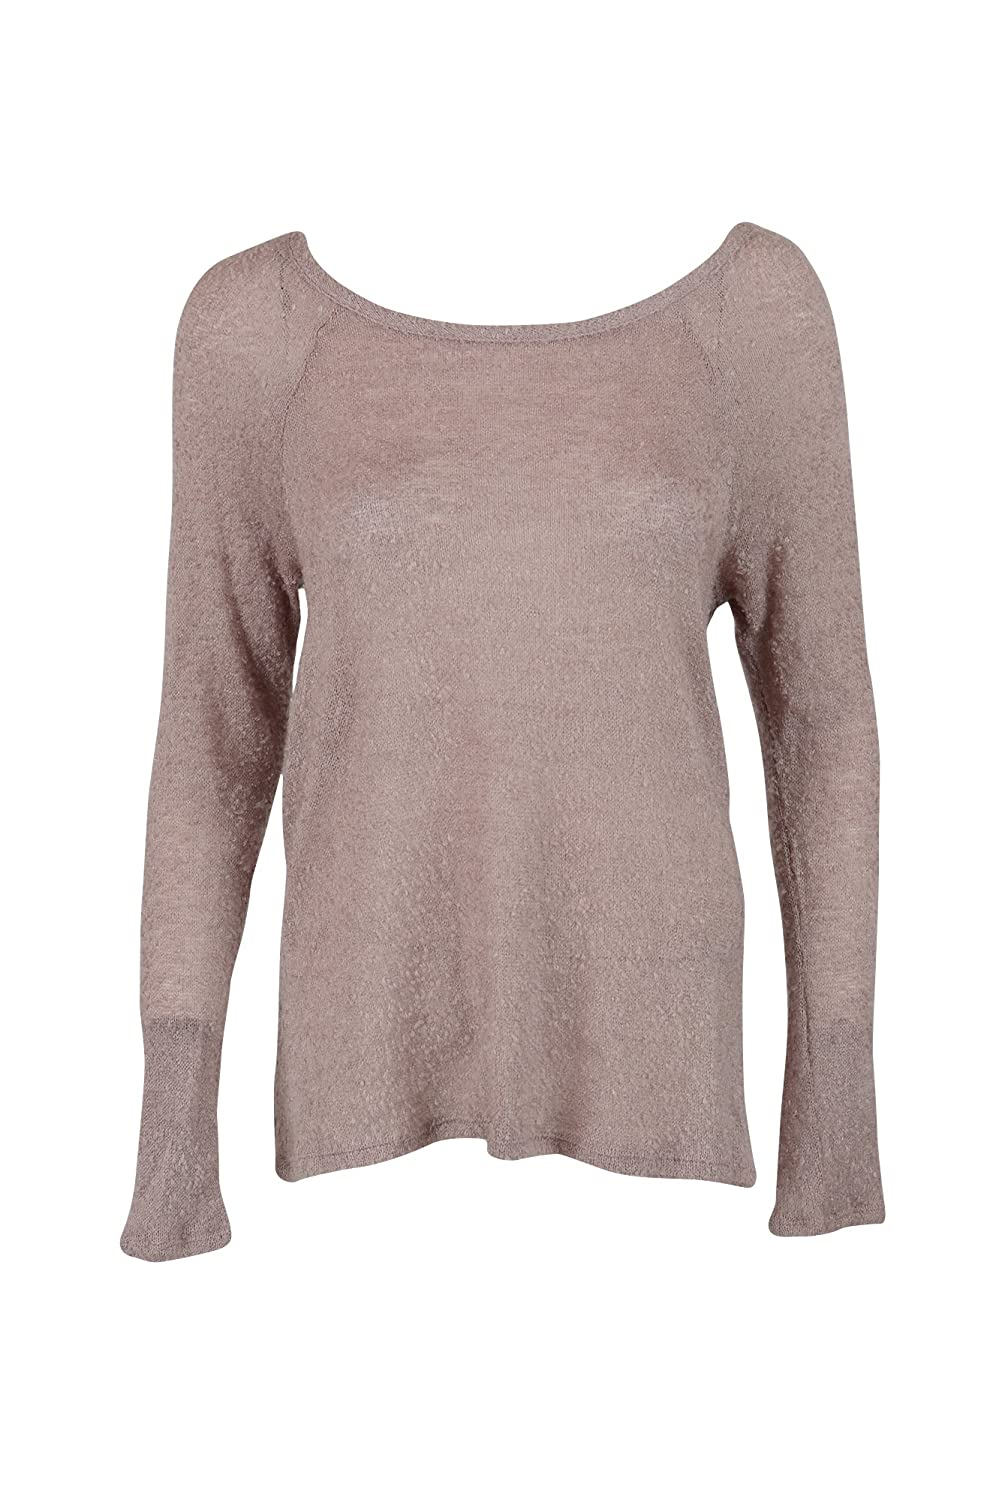 Bar III Womens Boucle Pleated Pullover Top